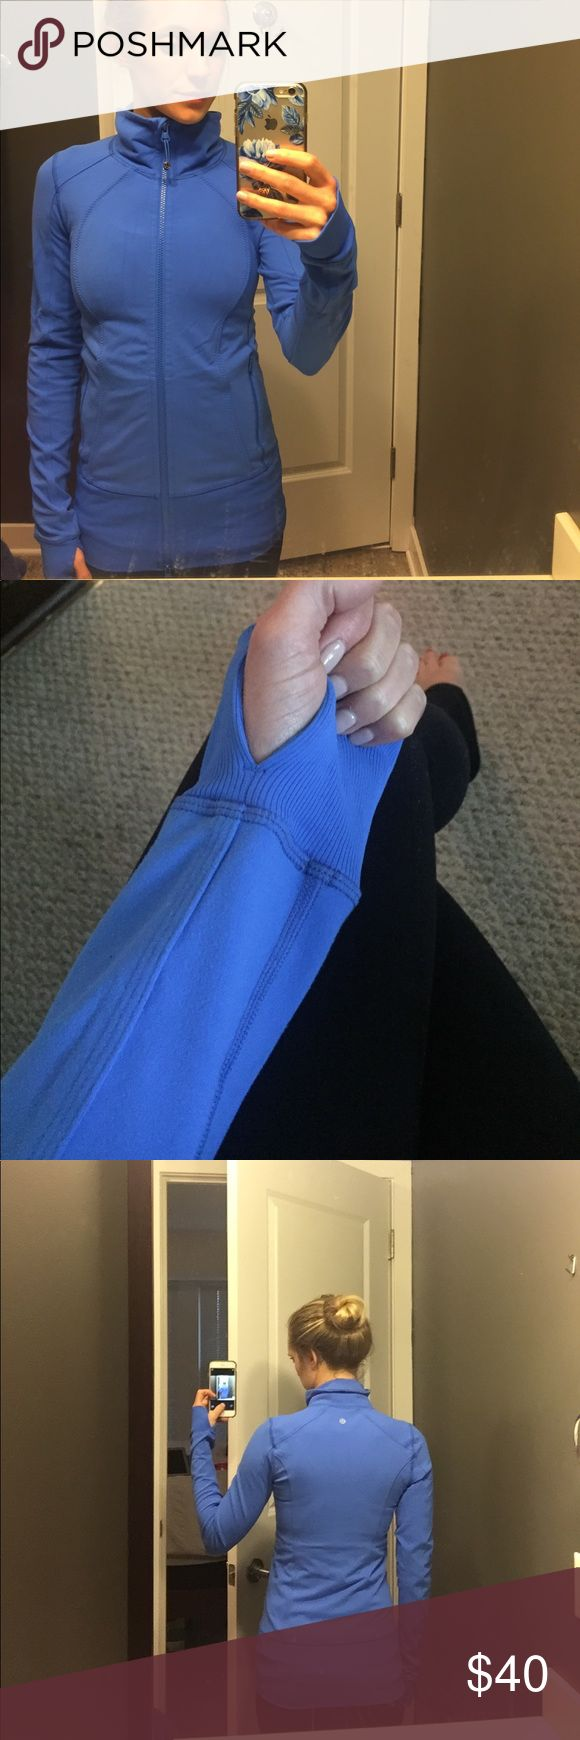 """Lululemon jacket Blue zip up jacket, no hood. I can't remember what the official name of this jacket is, but it is about 4 years old. It is thicker and longer than the Lululemon """"Define"""" jacket but has similar detailing (but no arch-type seaming on the back like """"Define) and also has a thick elastic band on the bottom. I am 5'6"""" and can pull it down over my bum. The zipper comes up from the bottom as well so you can zip it up both ways if you like. Excellent condition! lululemon athletica…"""